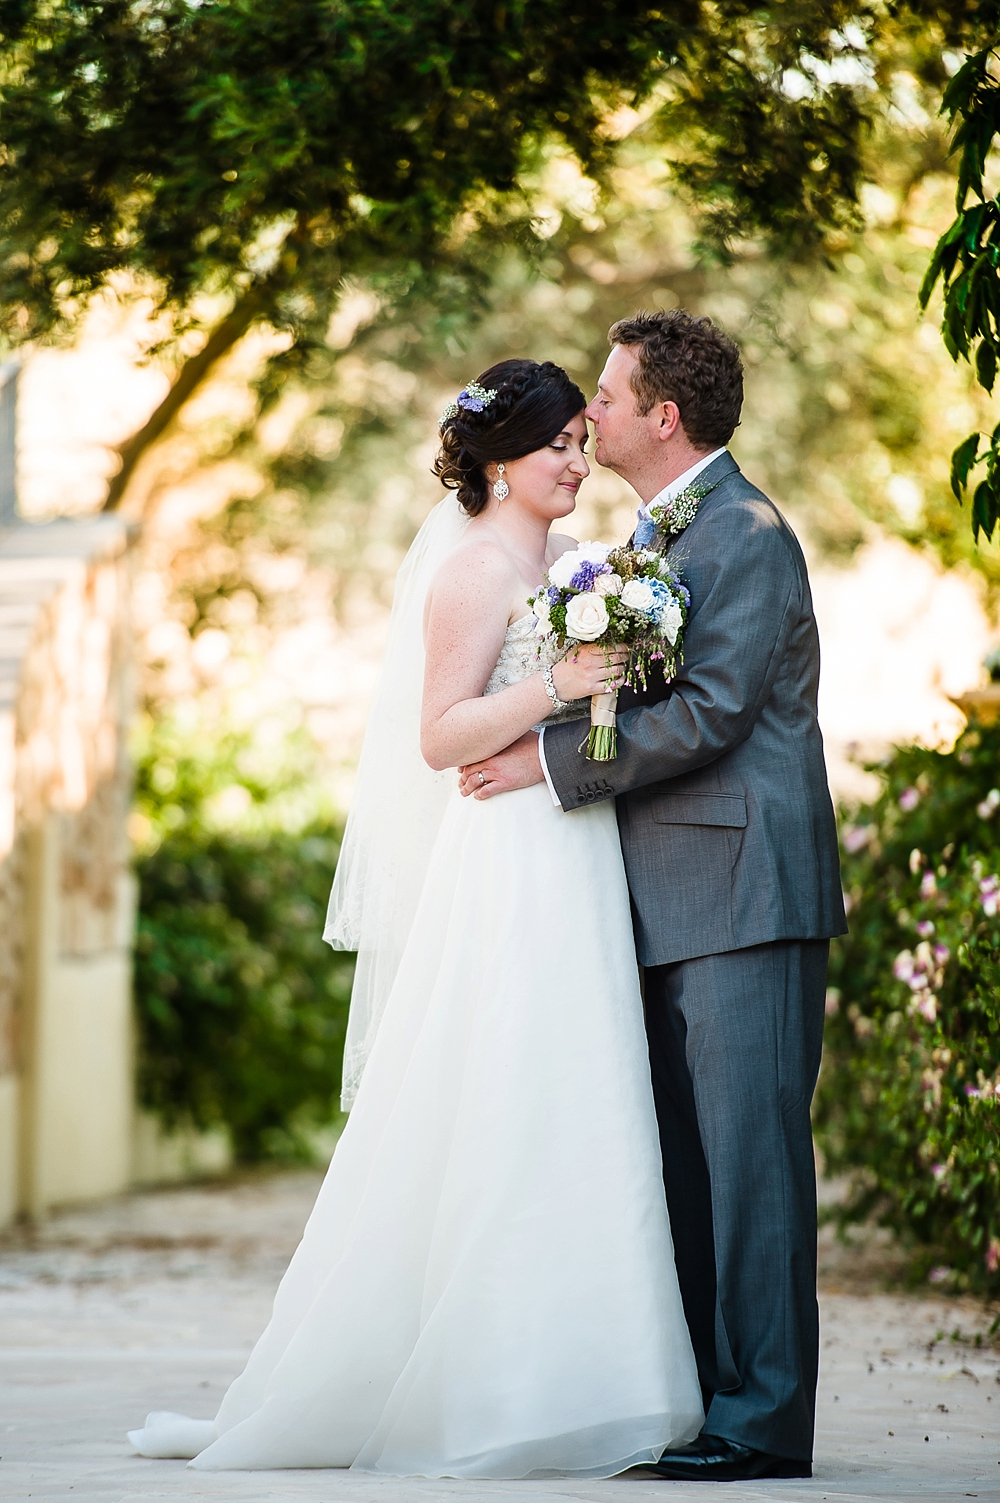 Villa Arrigo Malta - Wedding Photographer - Shane P. Watts